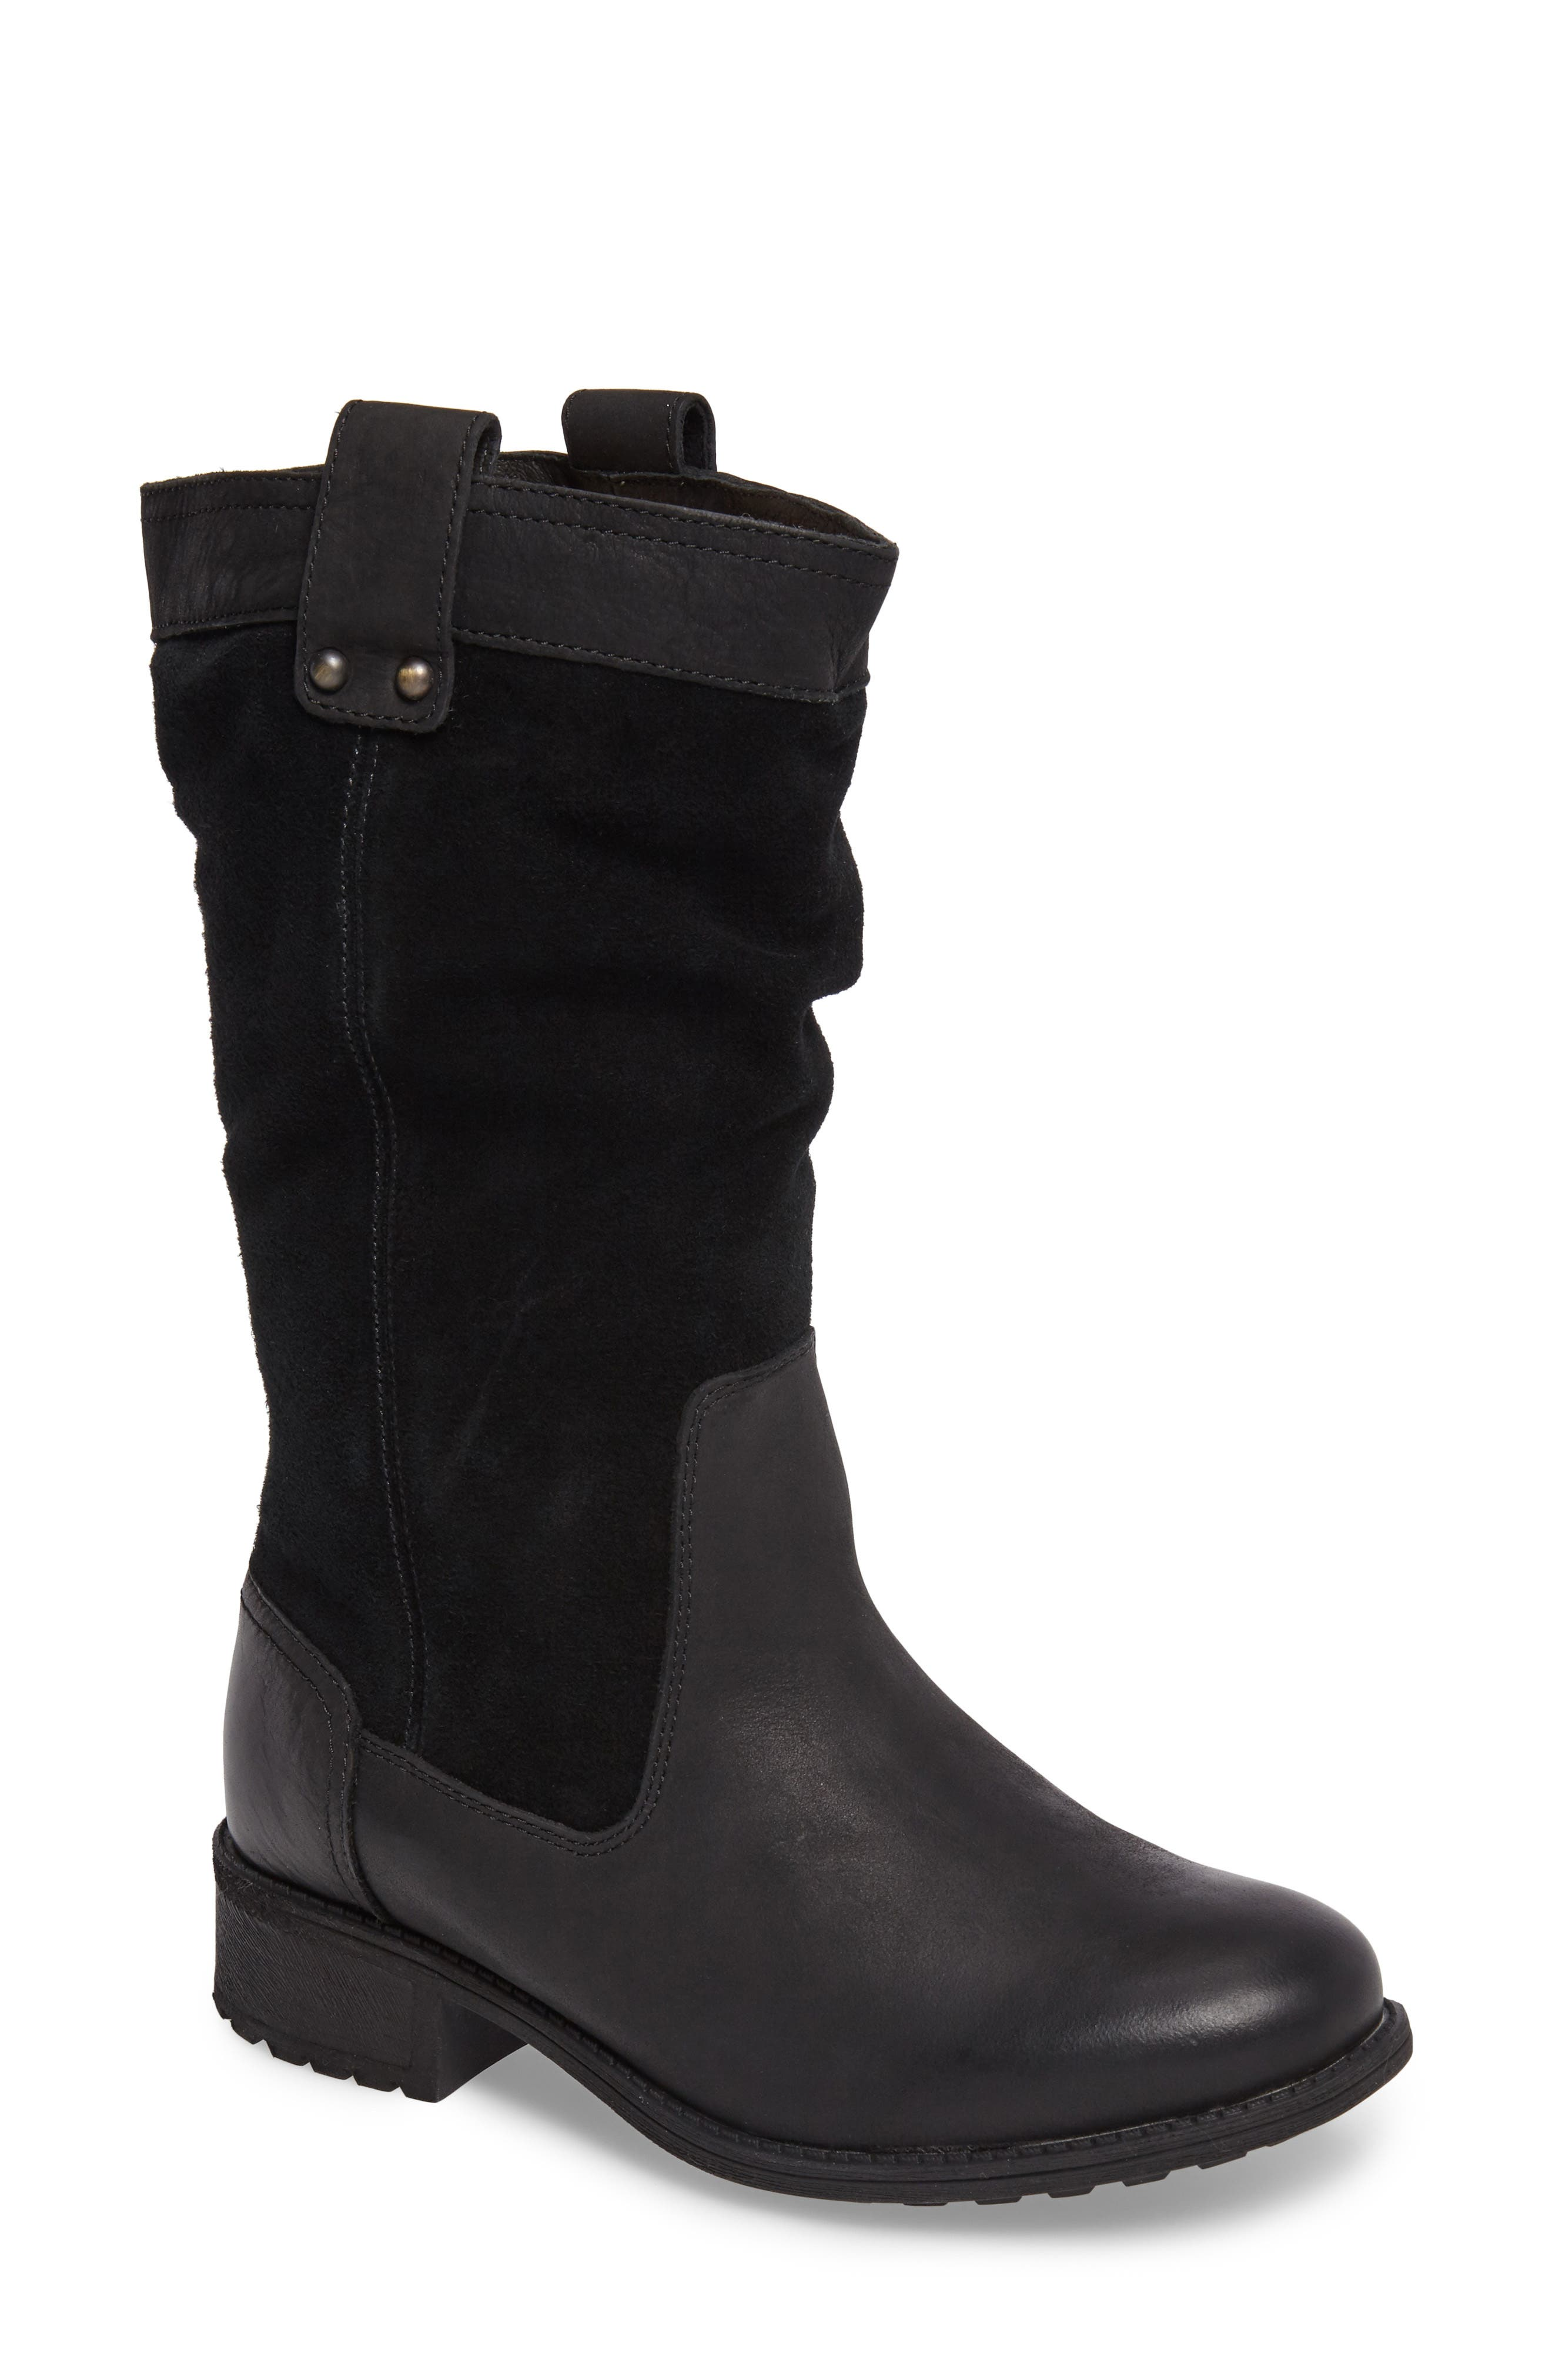 Bruckner Water Resistant Slouch Boot,                             Main thumbnail 1, color,                             Black Leather